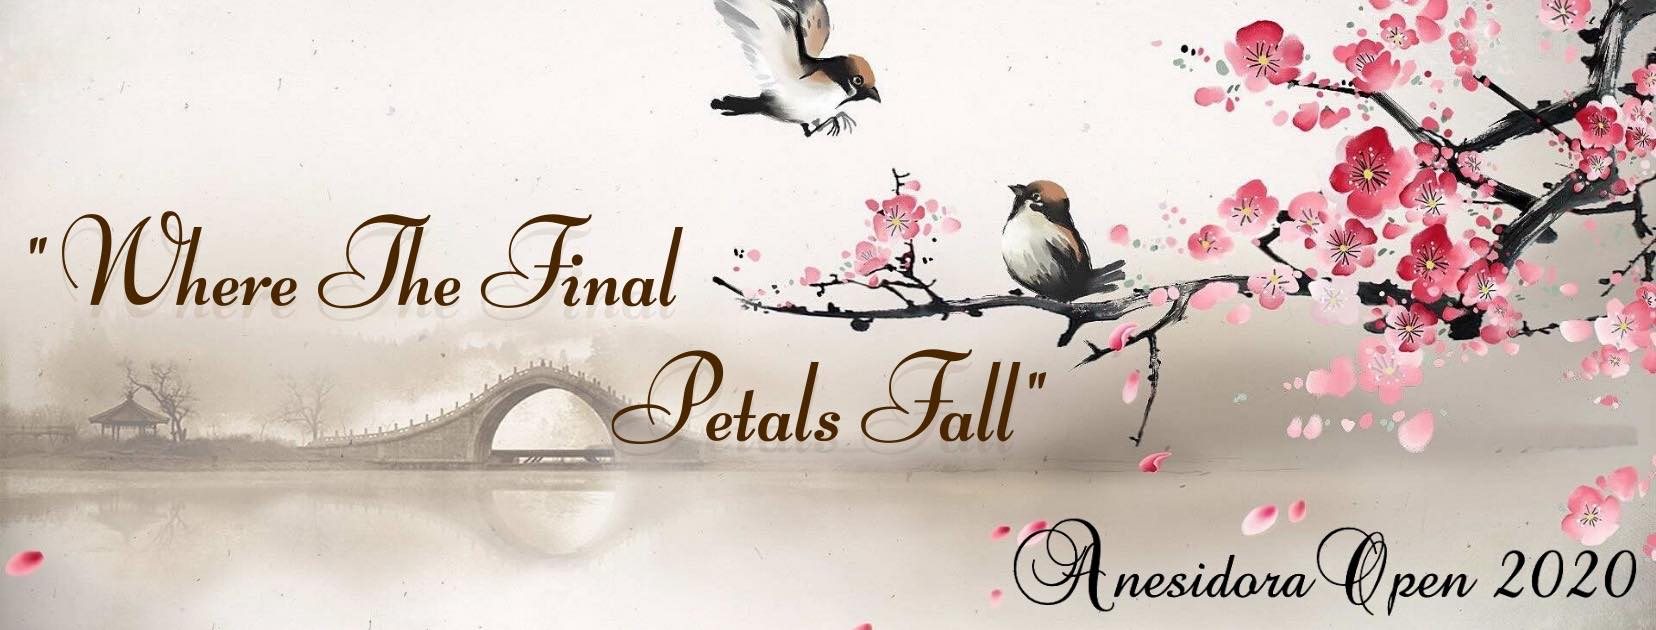 Where the Final Petals Fall